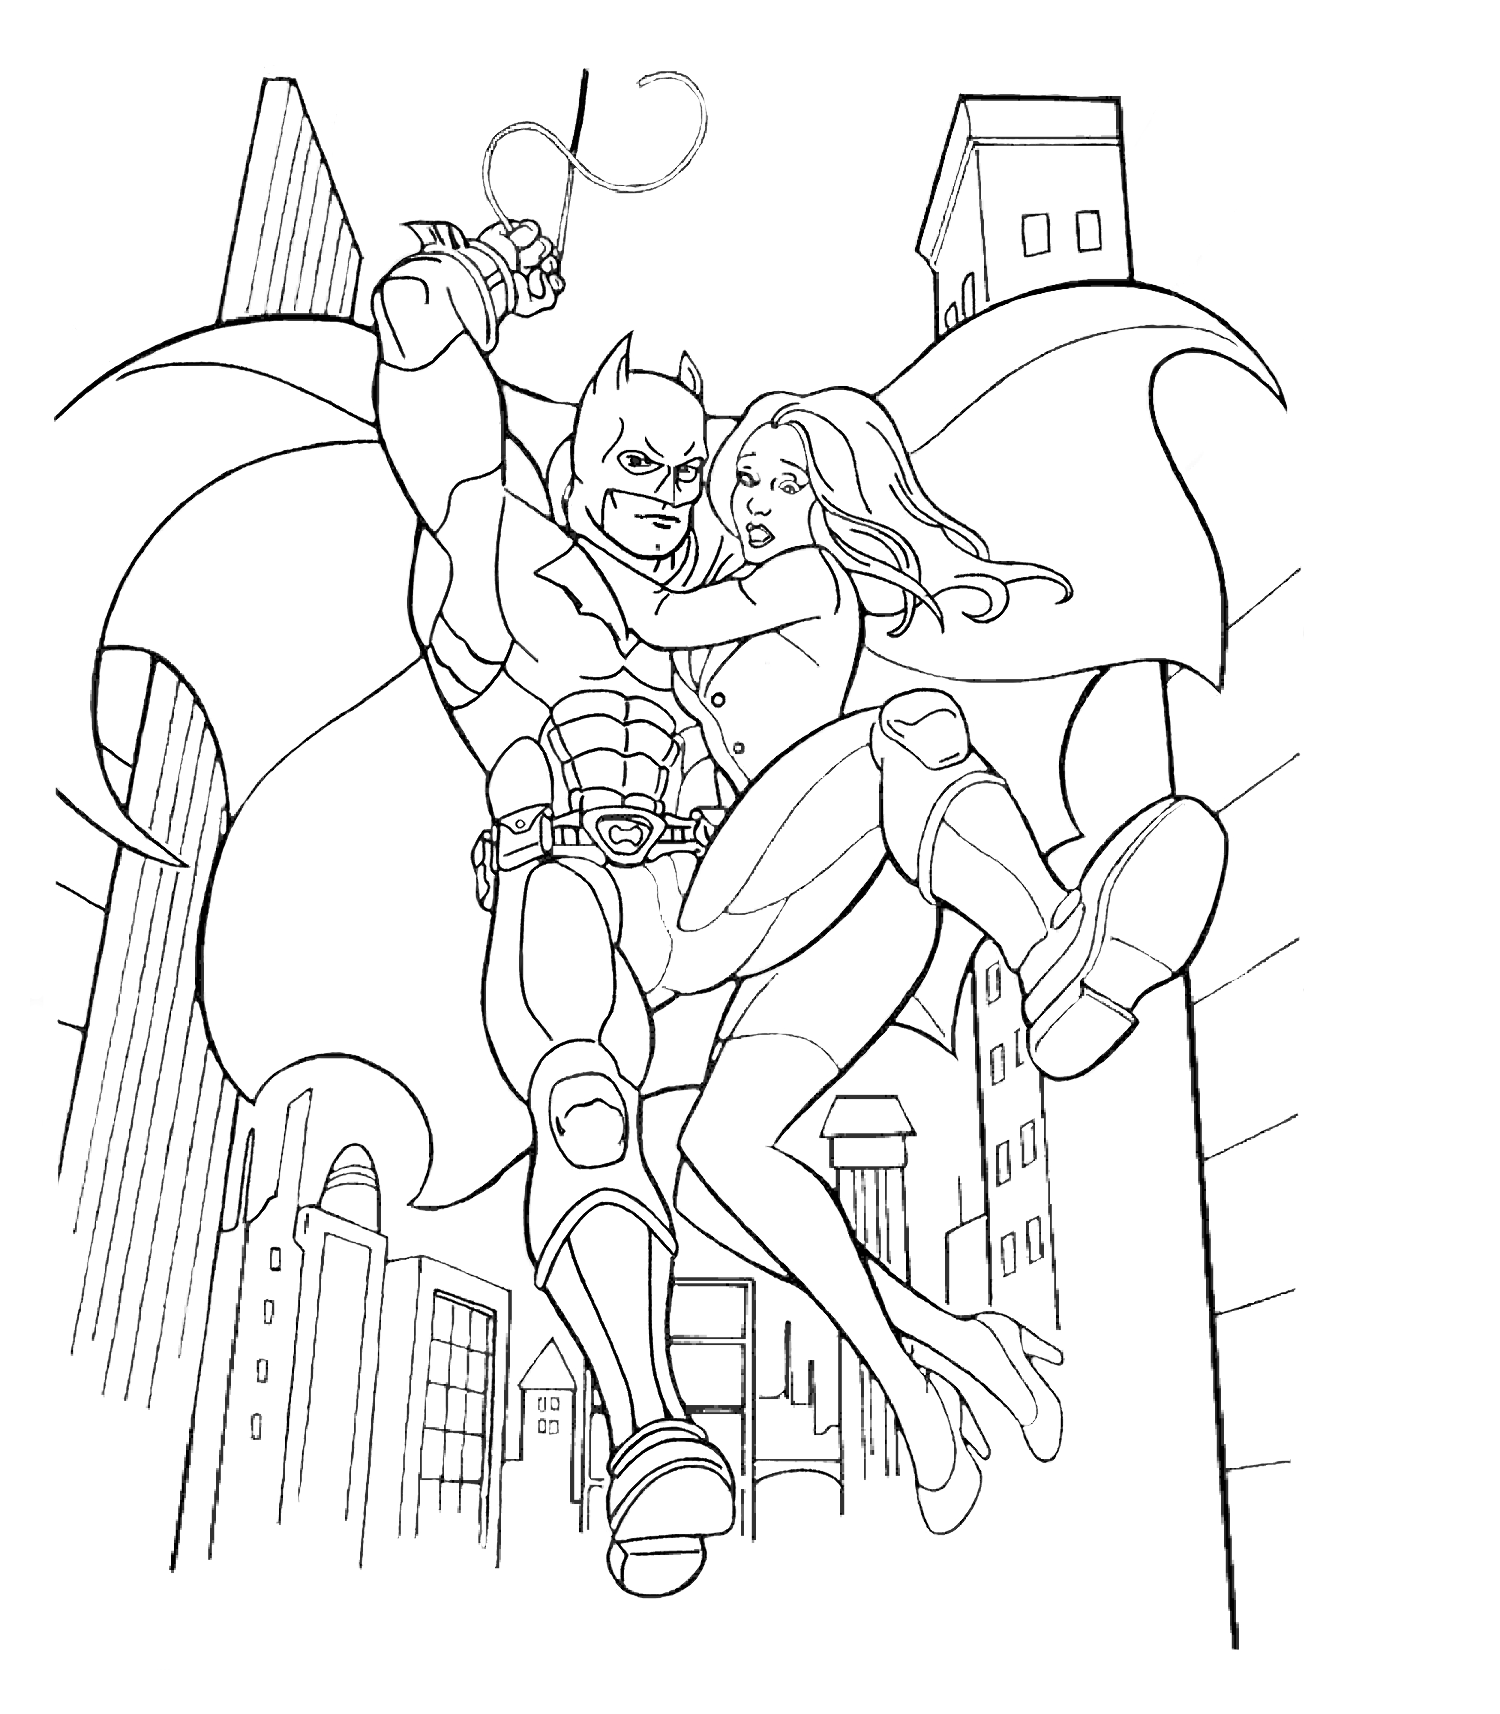 batman colouring sheet batman coloring pages print and colorcom sheet colouring batman